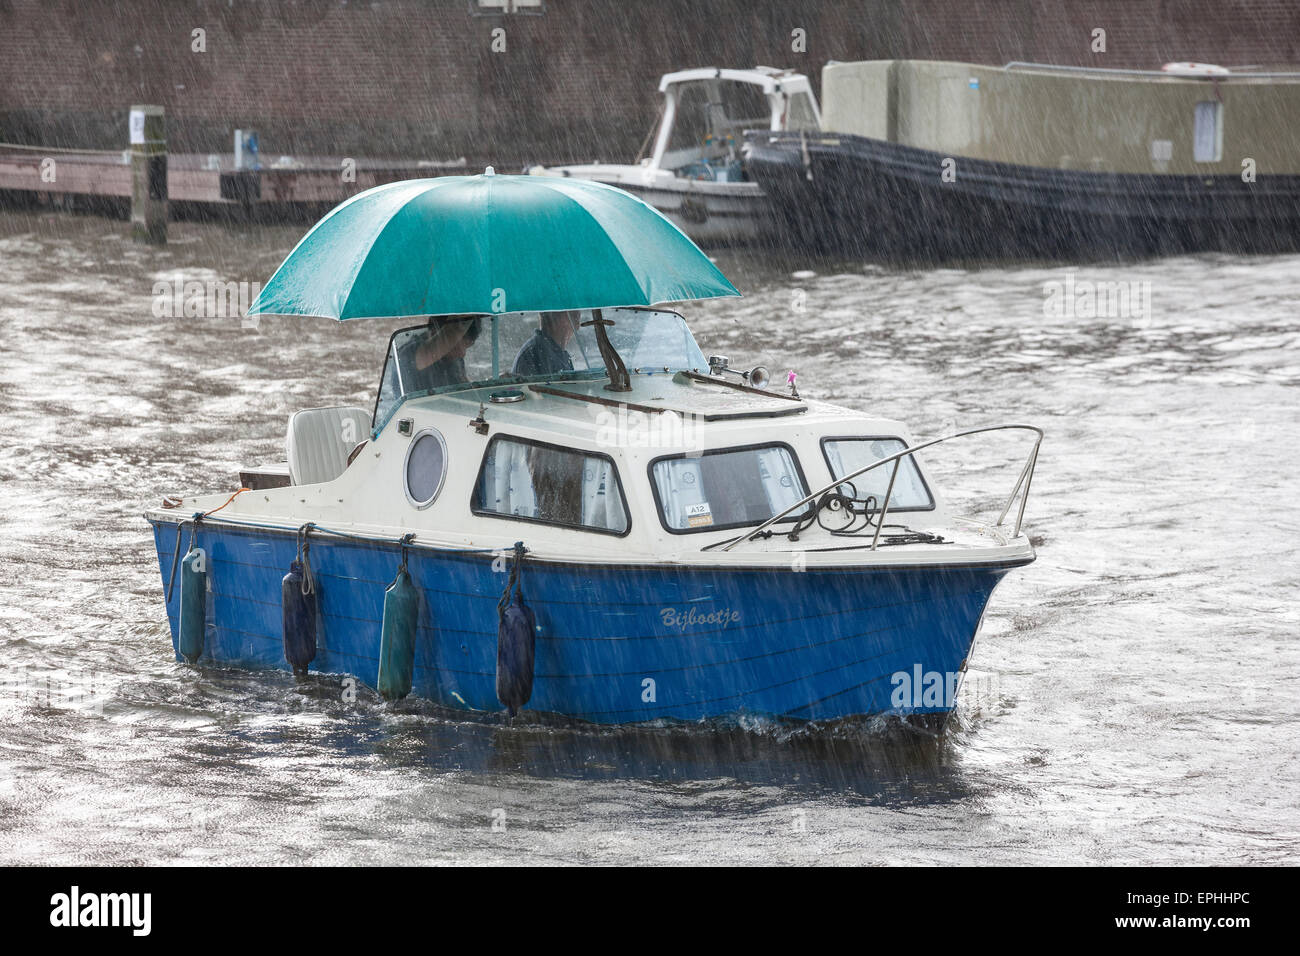 https://c7.alamy.com/comp/EPHHPC/amsterdam-raining-small-boat-small-cabin-cruiser-in-sudden-summer-EPHHPC.jpg